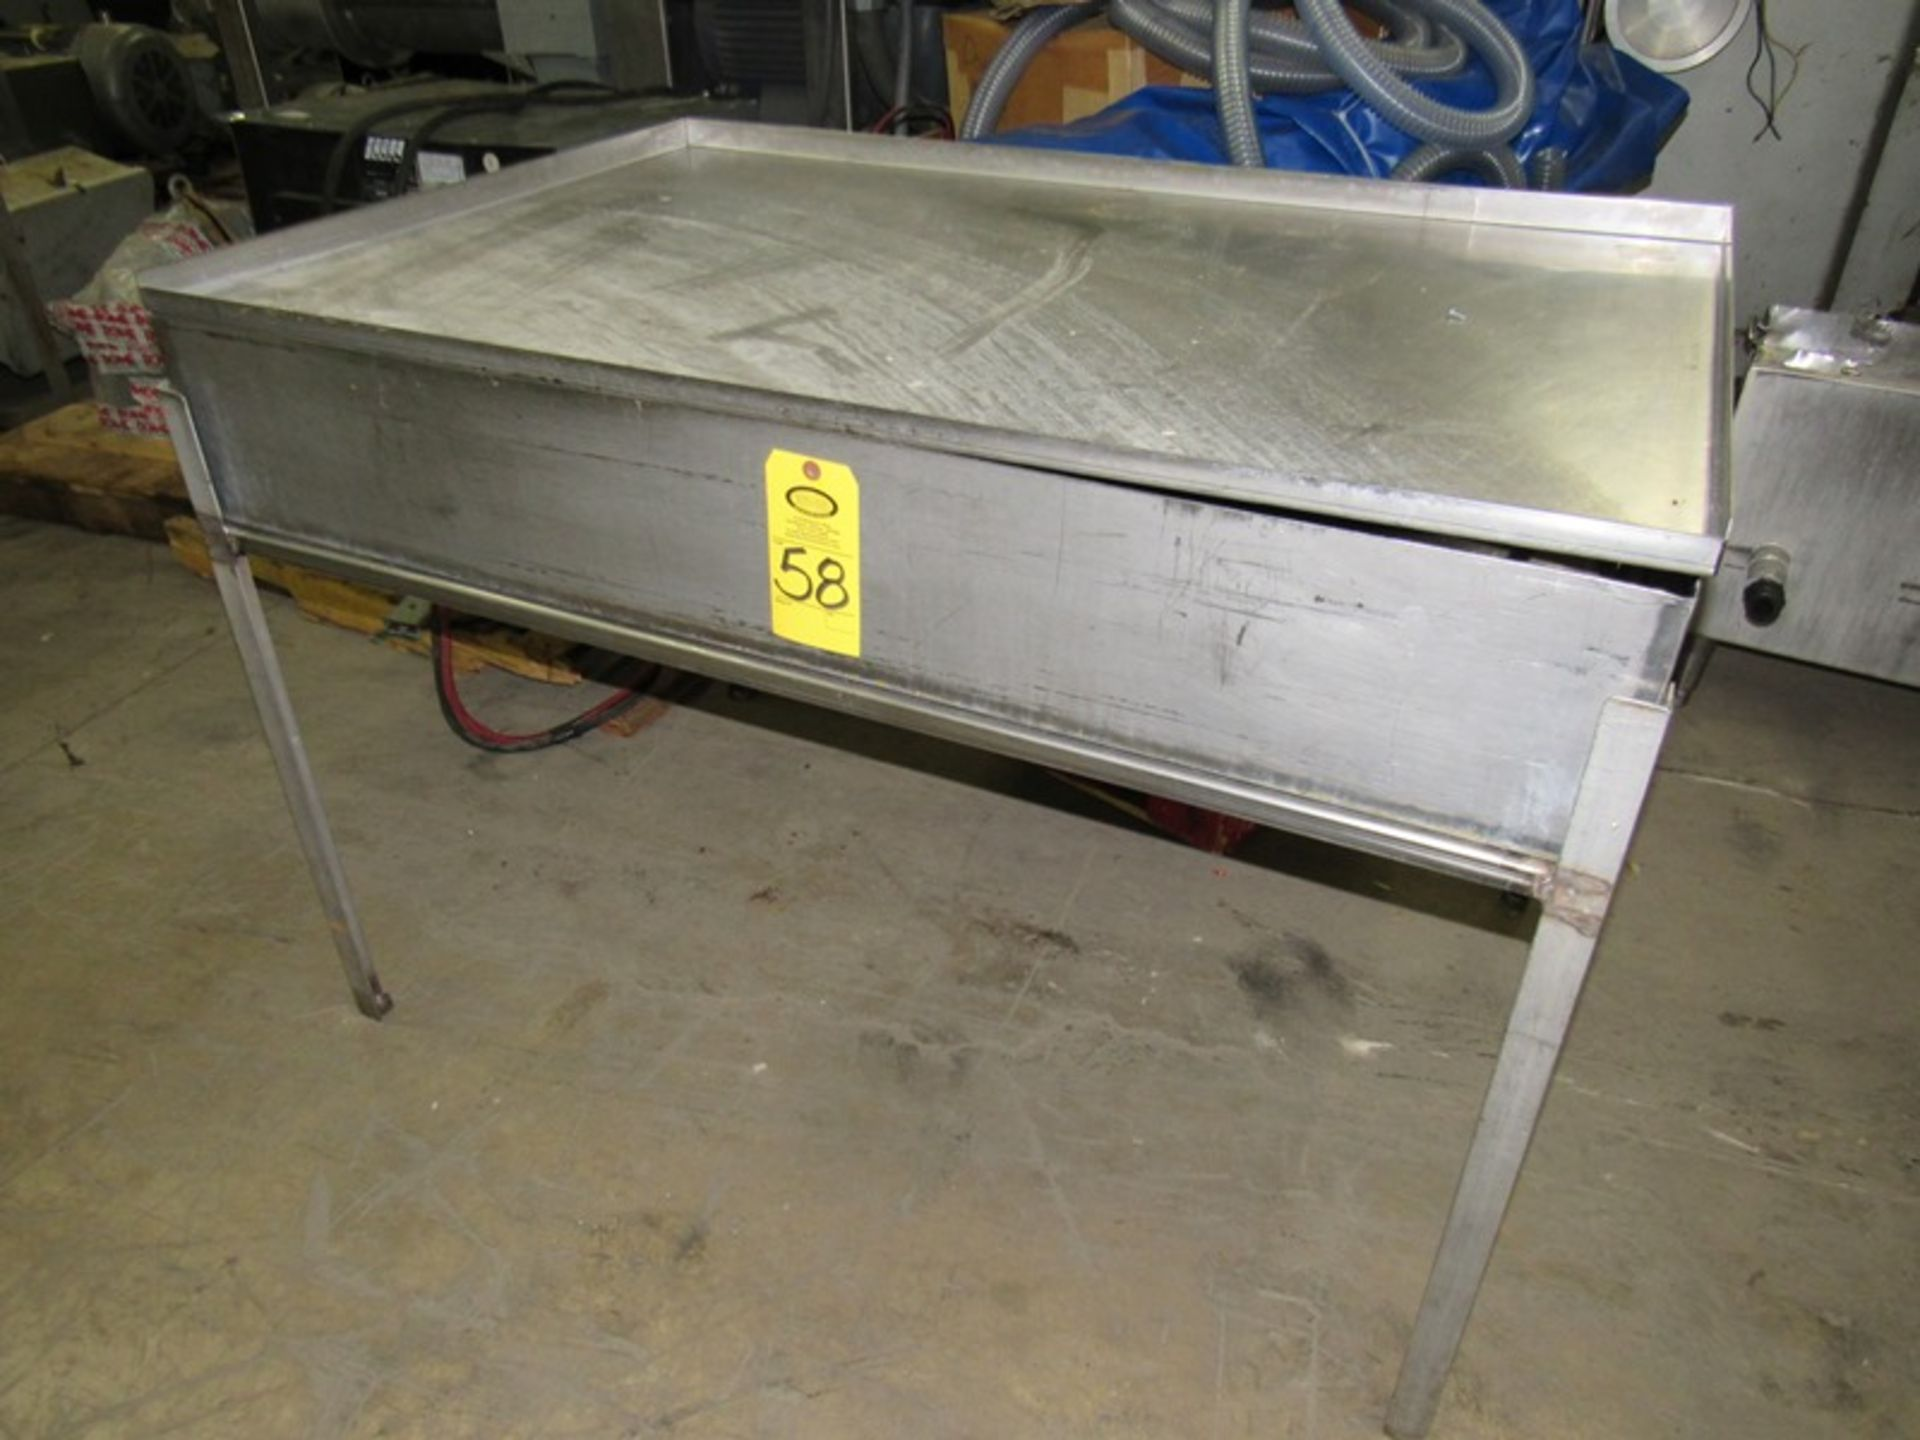 """Lot 58 - Lot Stainless Steel Trough, 35"""" W X 52"""" L X 8"""" D with lid, (1) Stainless Steel Table, 33"""" W X 58"""""""